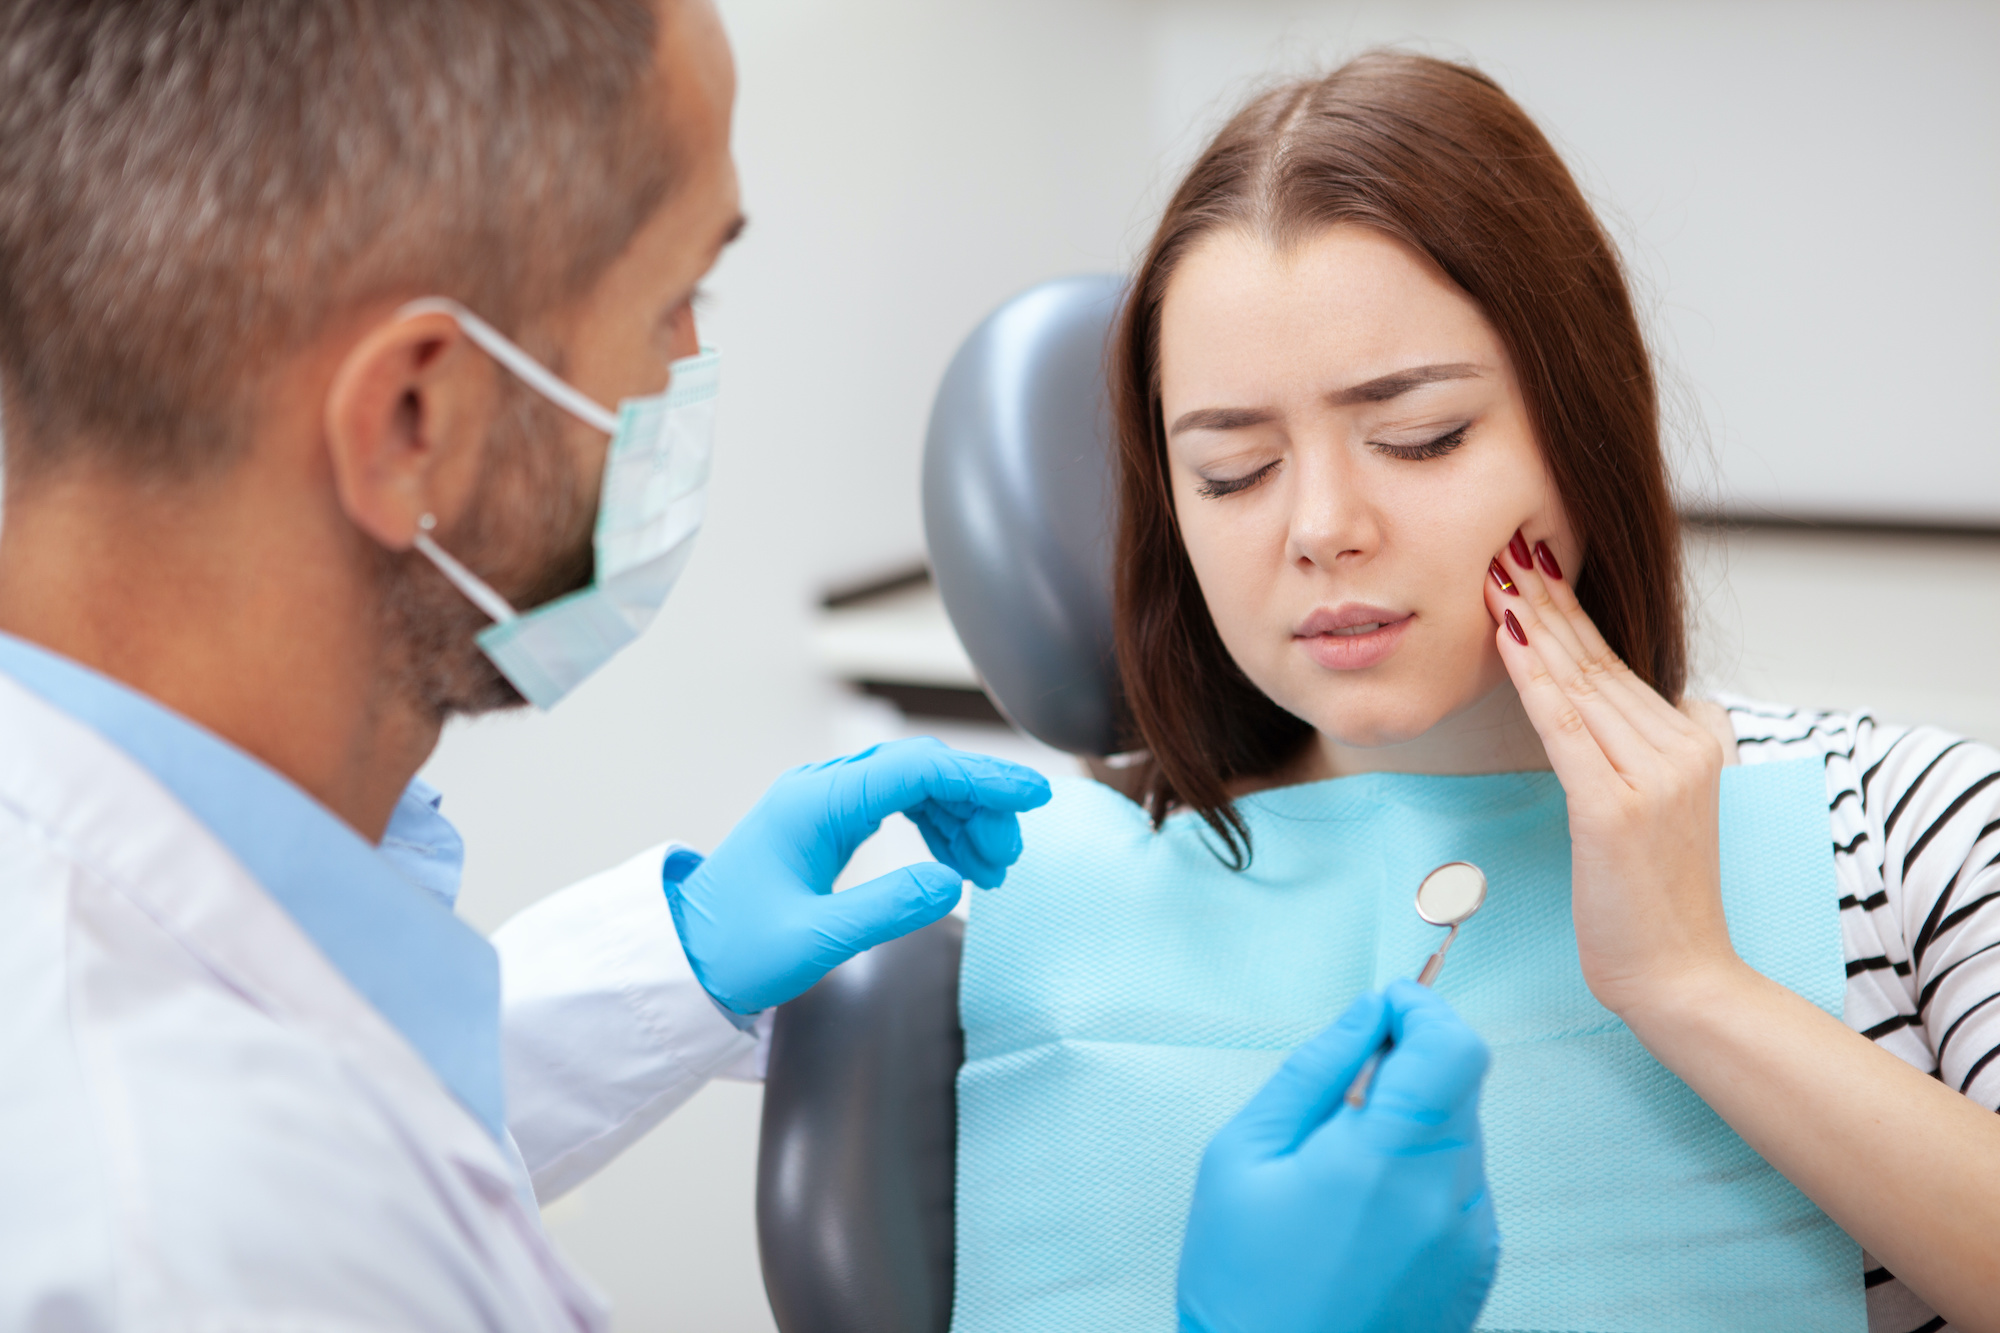 Dental Emergencies And Tips To Handle Them